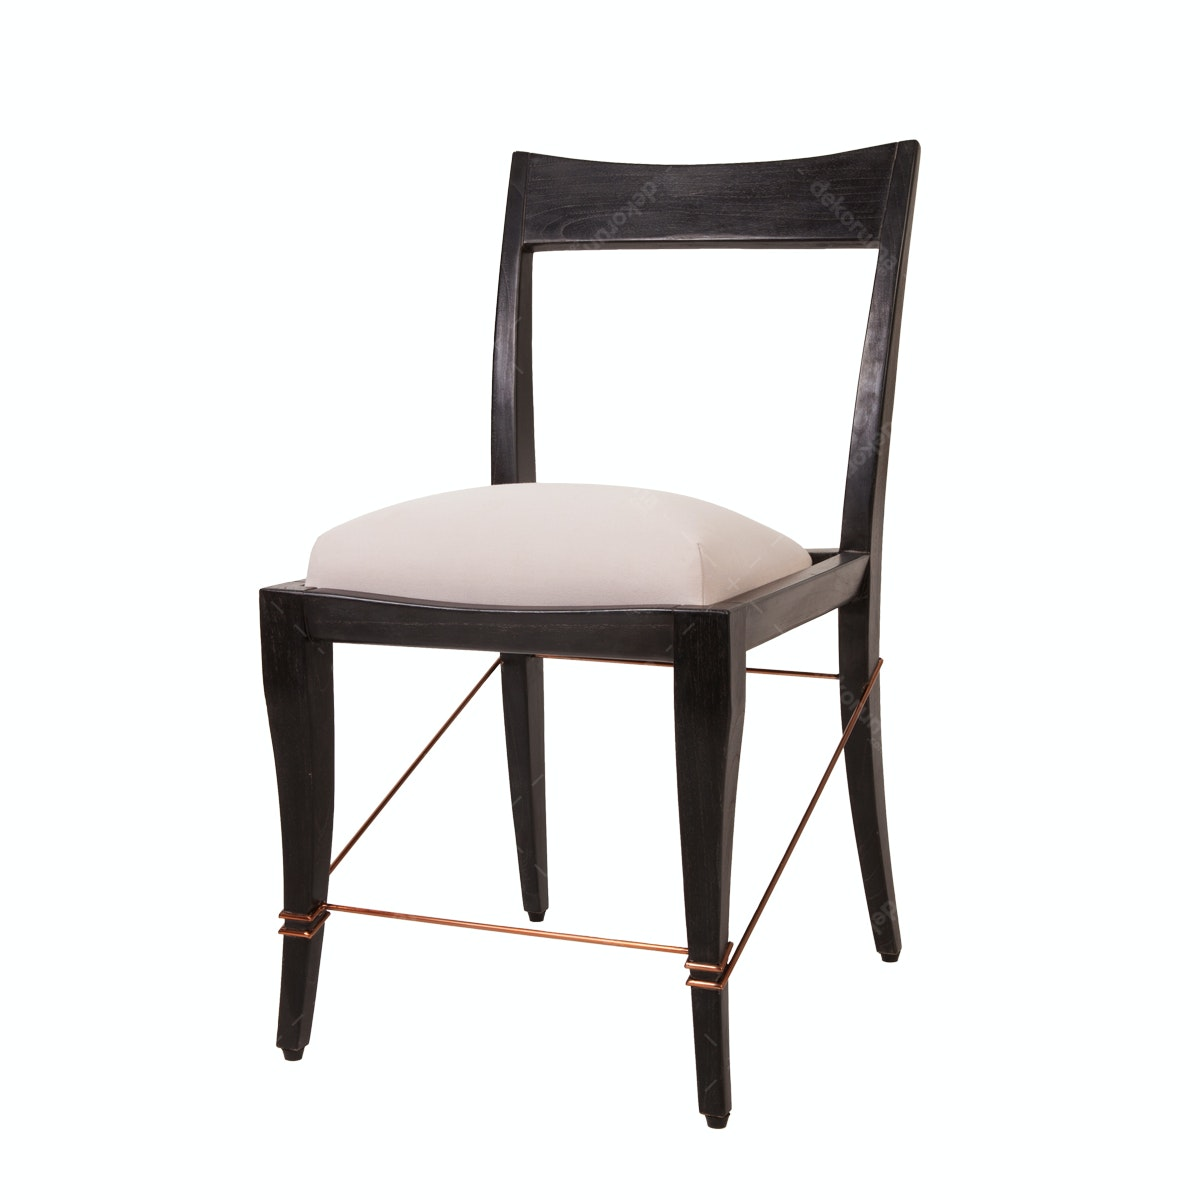 Alur Living Sephora Chair Choco